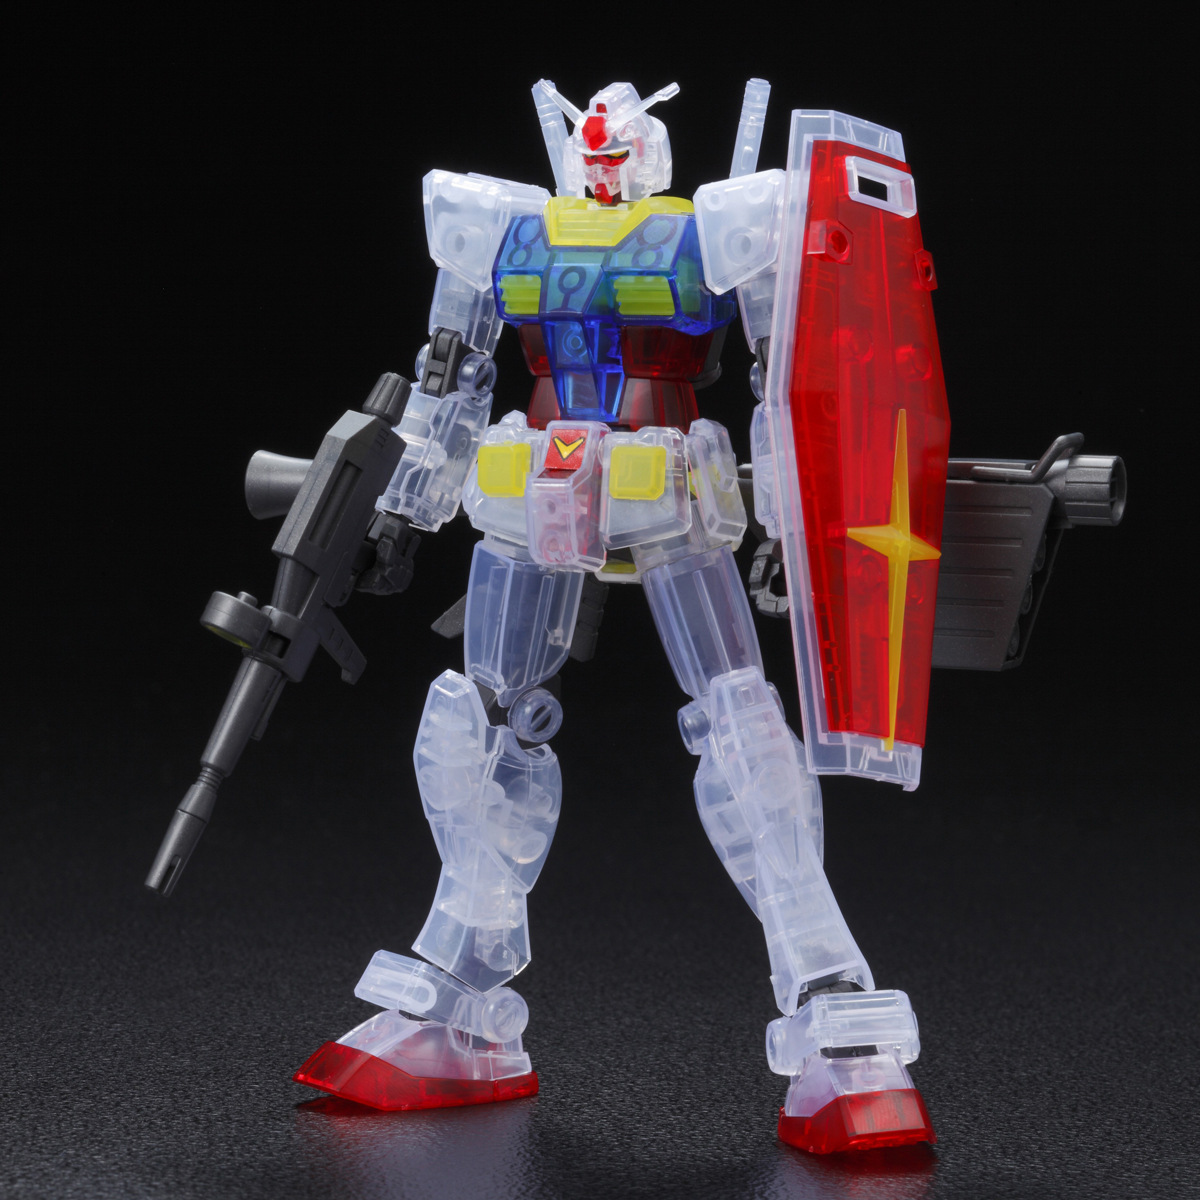 HG 1/144 RX-78-2 GUNDAM CLEAR COLOR Ver.[Sep 2020 Delivery]